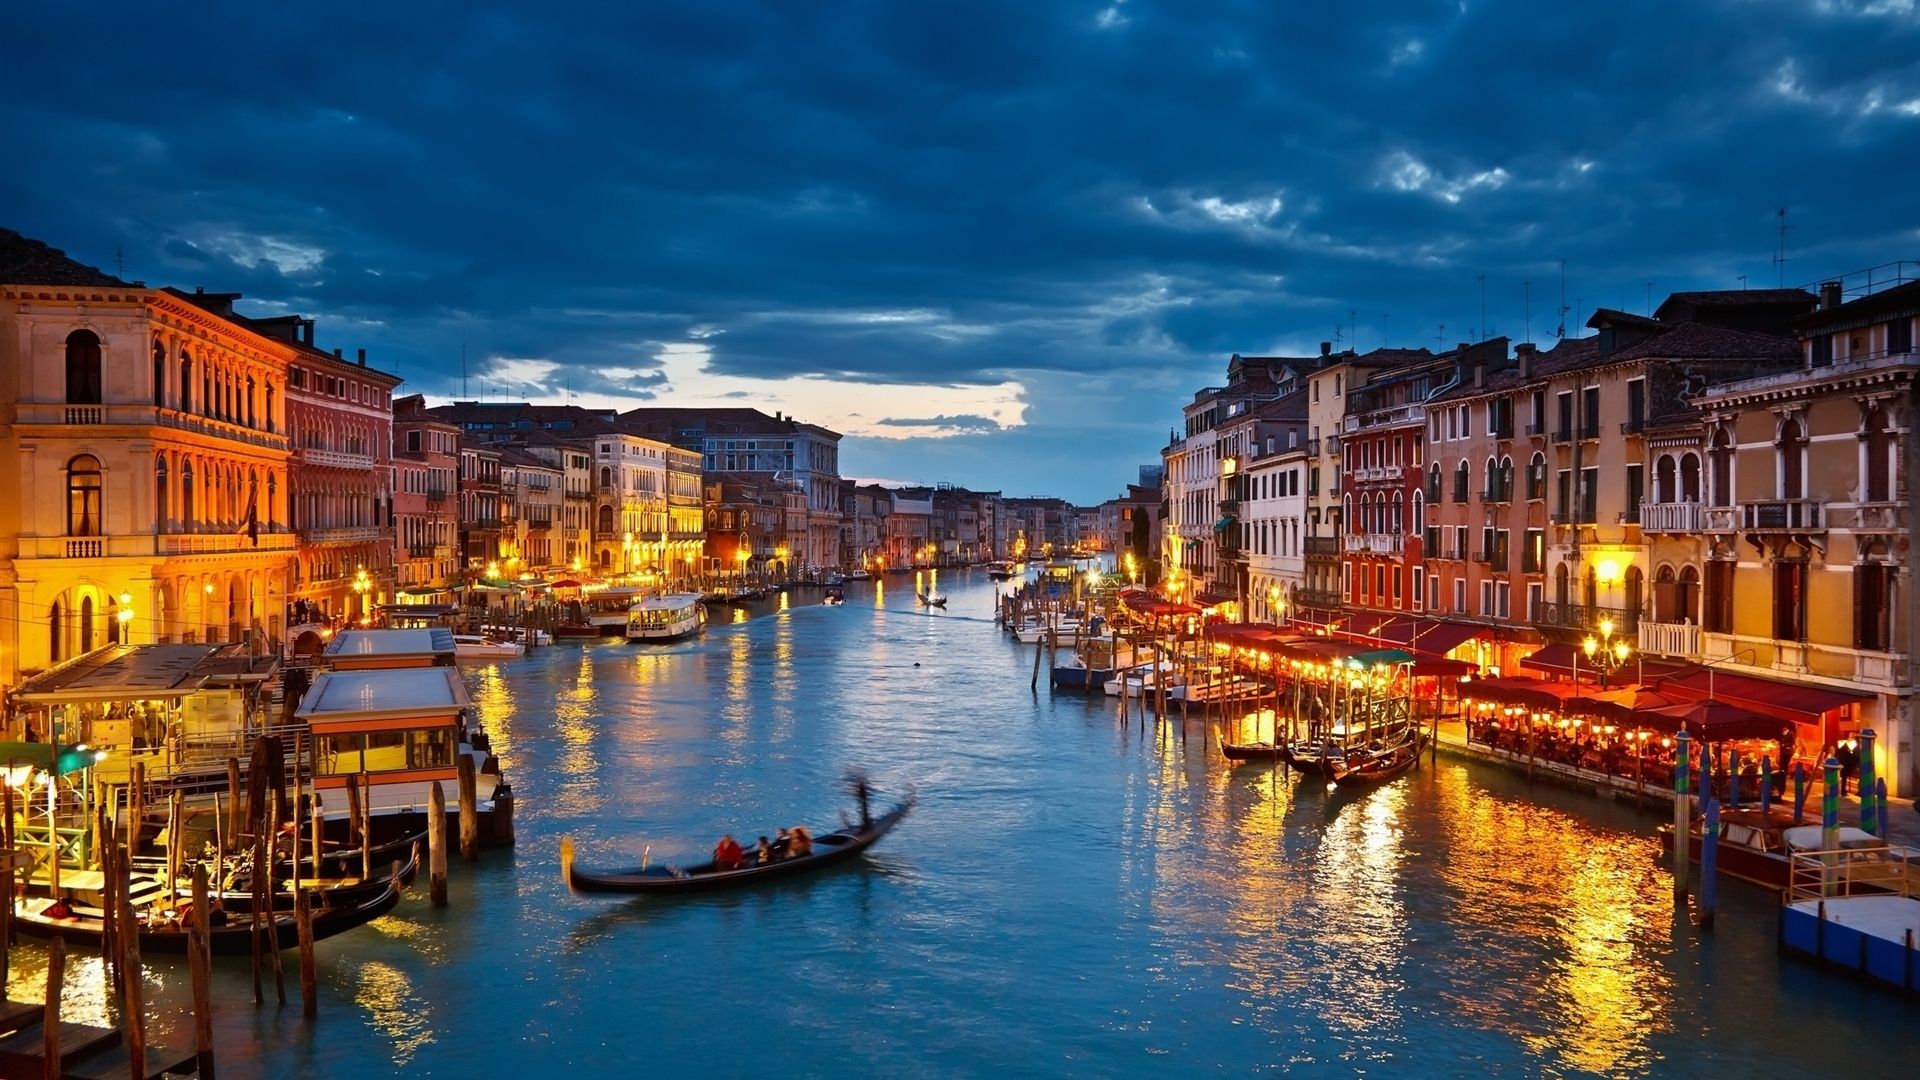 Venice At Night HD Wallpaper Background Images 1920x1080